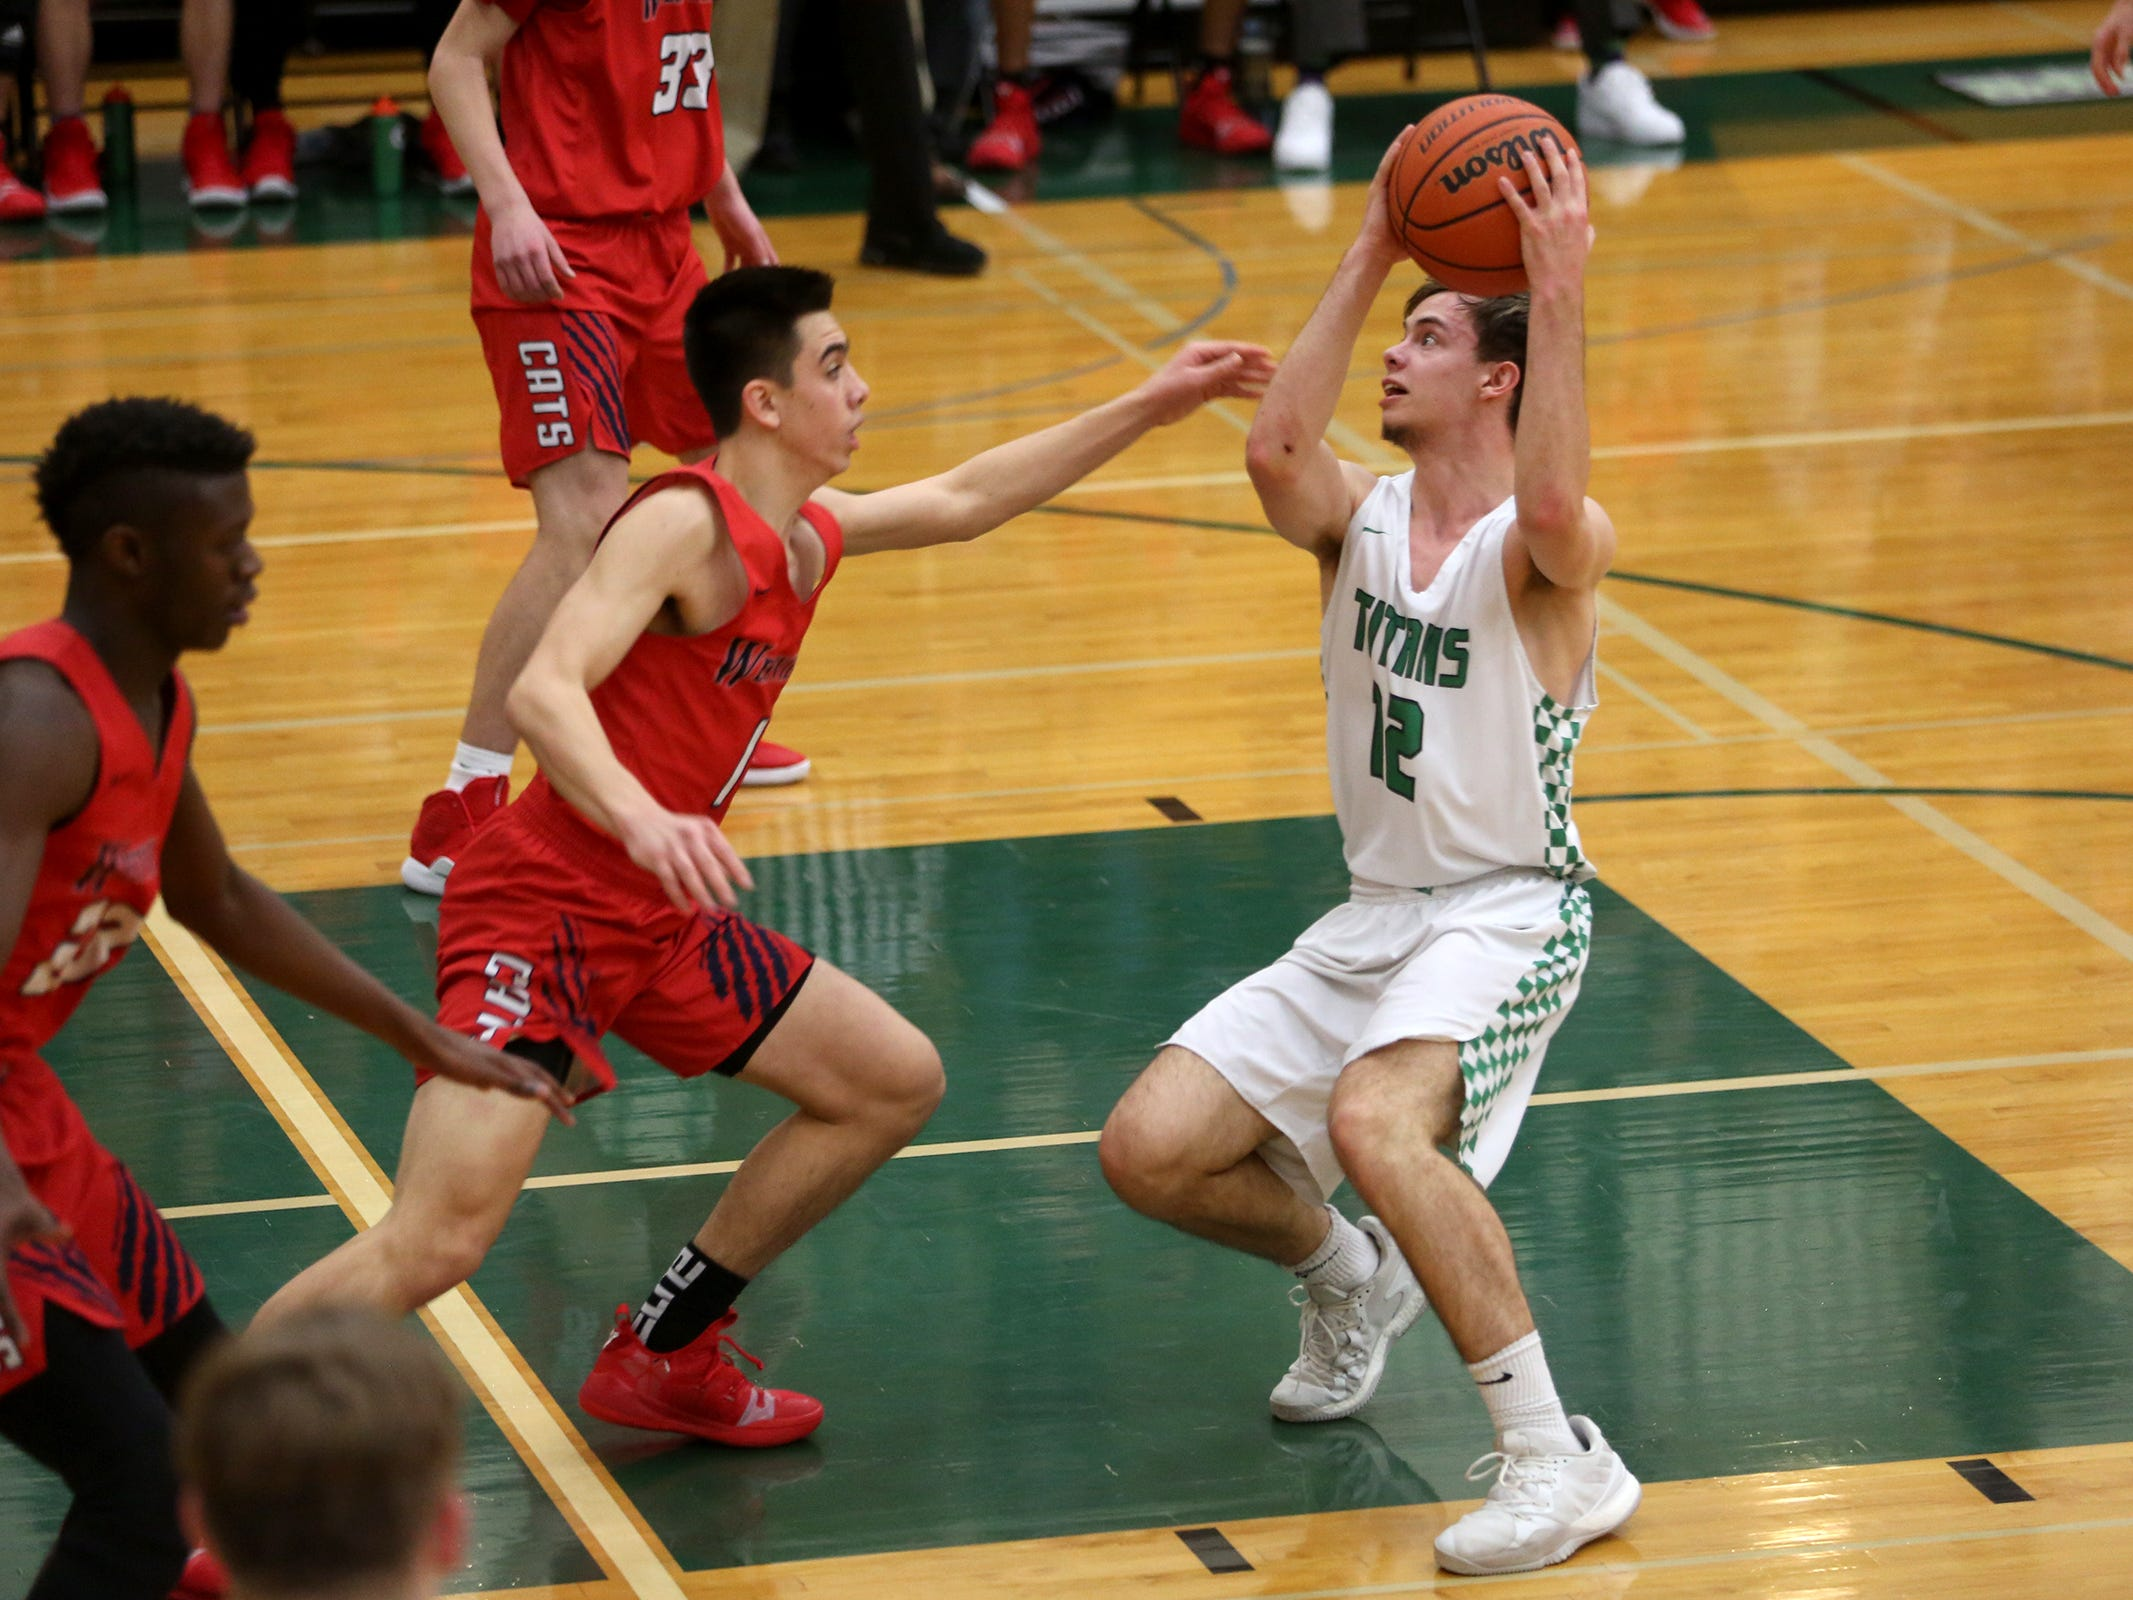 West Salem's Kieran Pruett (12) protects the ball during the West Salem vs. Westview 6A Boys Basketball State Championships first round at West Salem High School in Salem on Tuesday, Feb. 26, 2019.